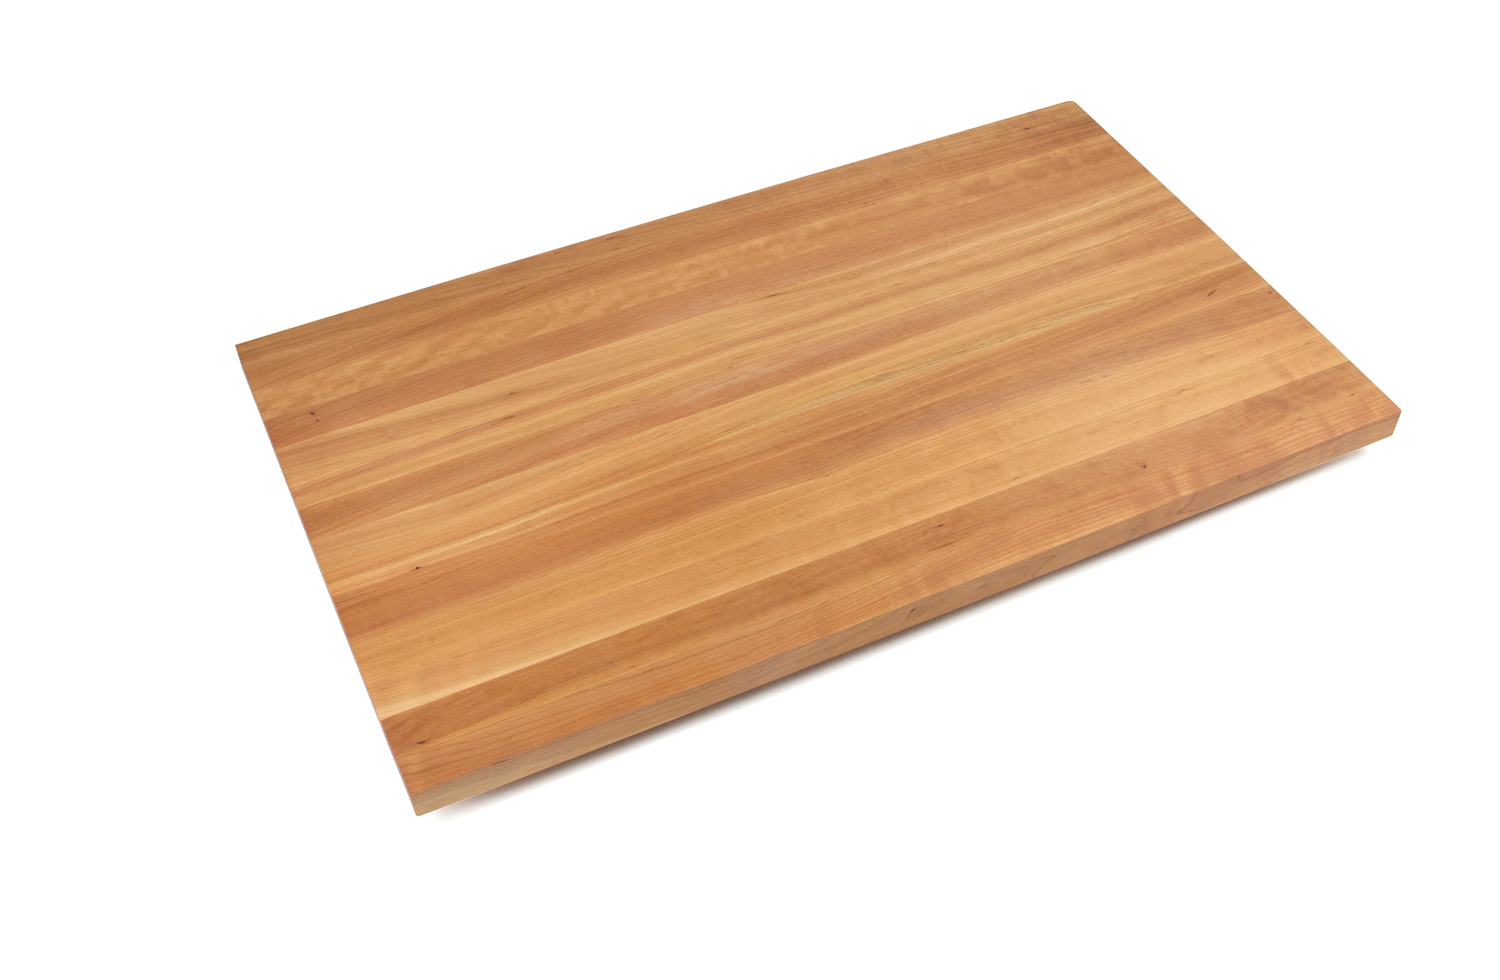 2.25 in. thick cherry edge grain counters 42 inches wide 2.25 inches thick